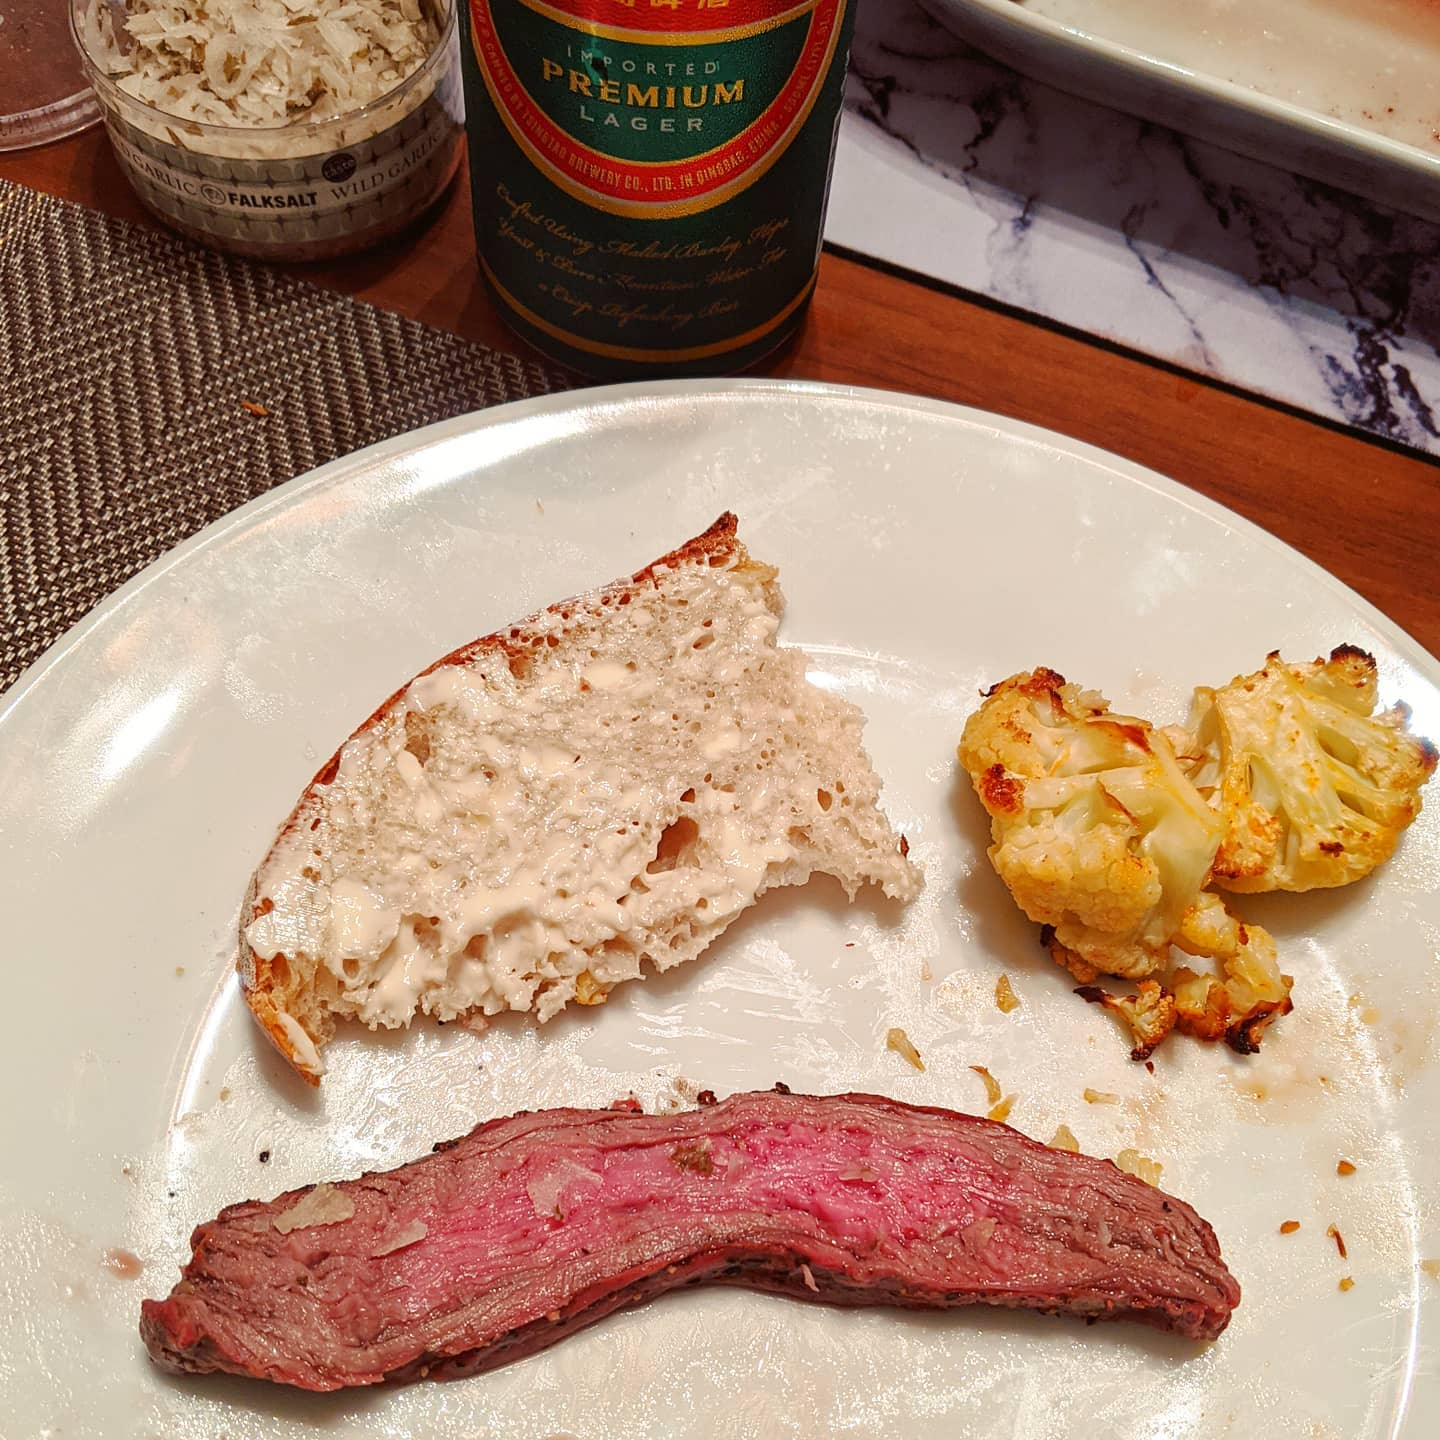 Almost forgot to take a picture of quarantine meal 9: grilled steak (vacío, I have no idea what this is in English), cauliflower with sriracha seasoning, and no-knead bread.